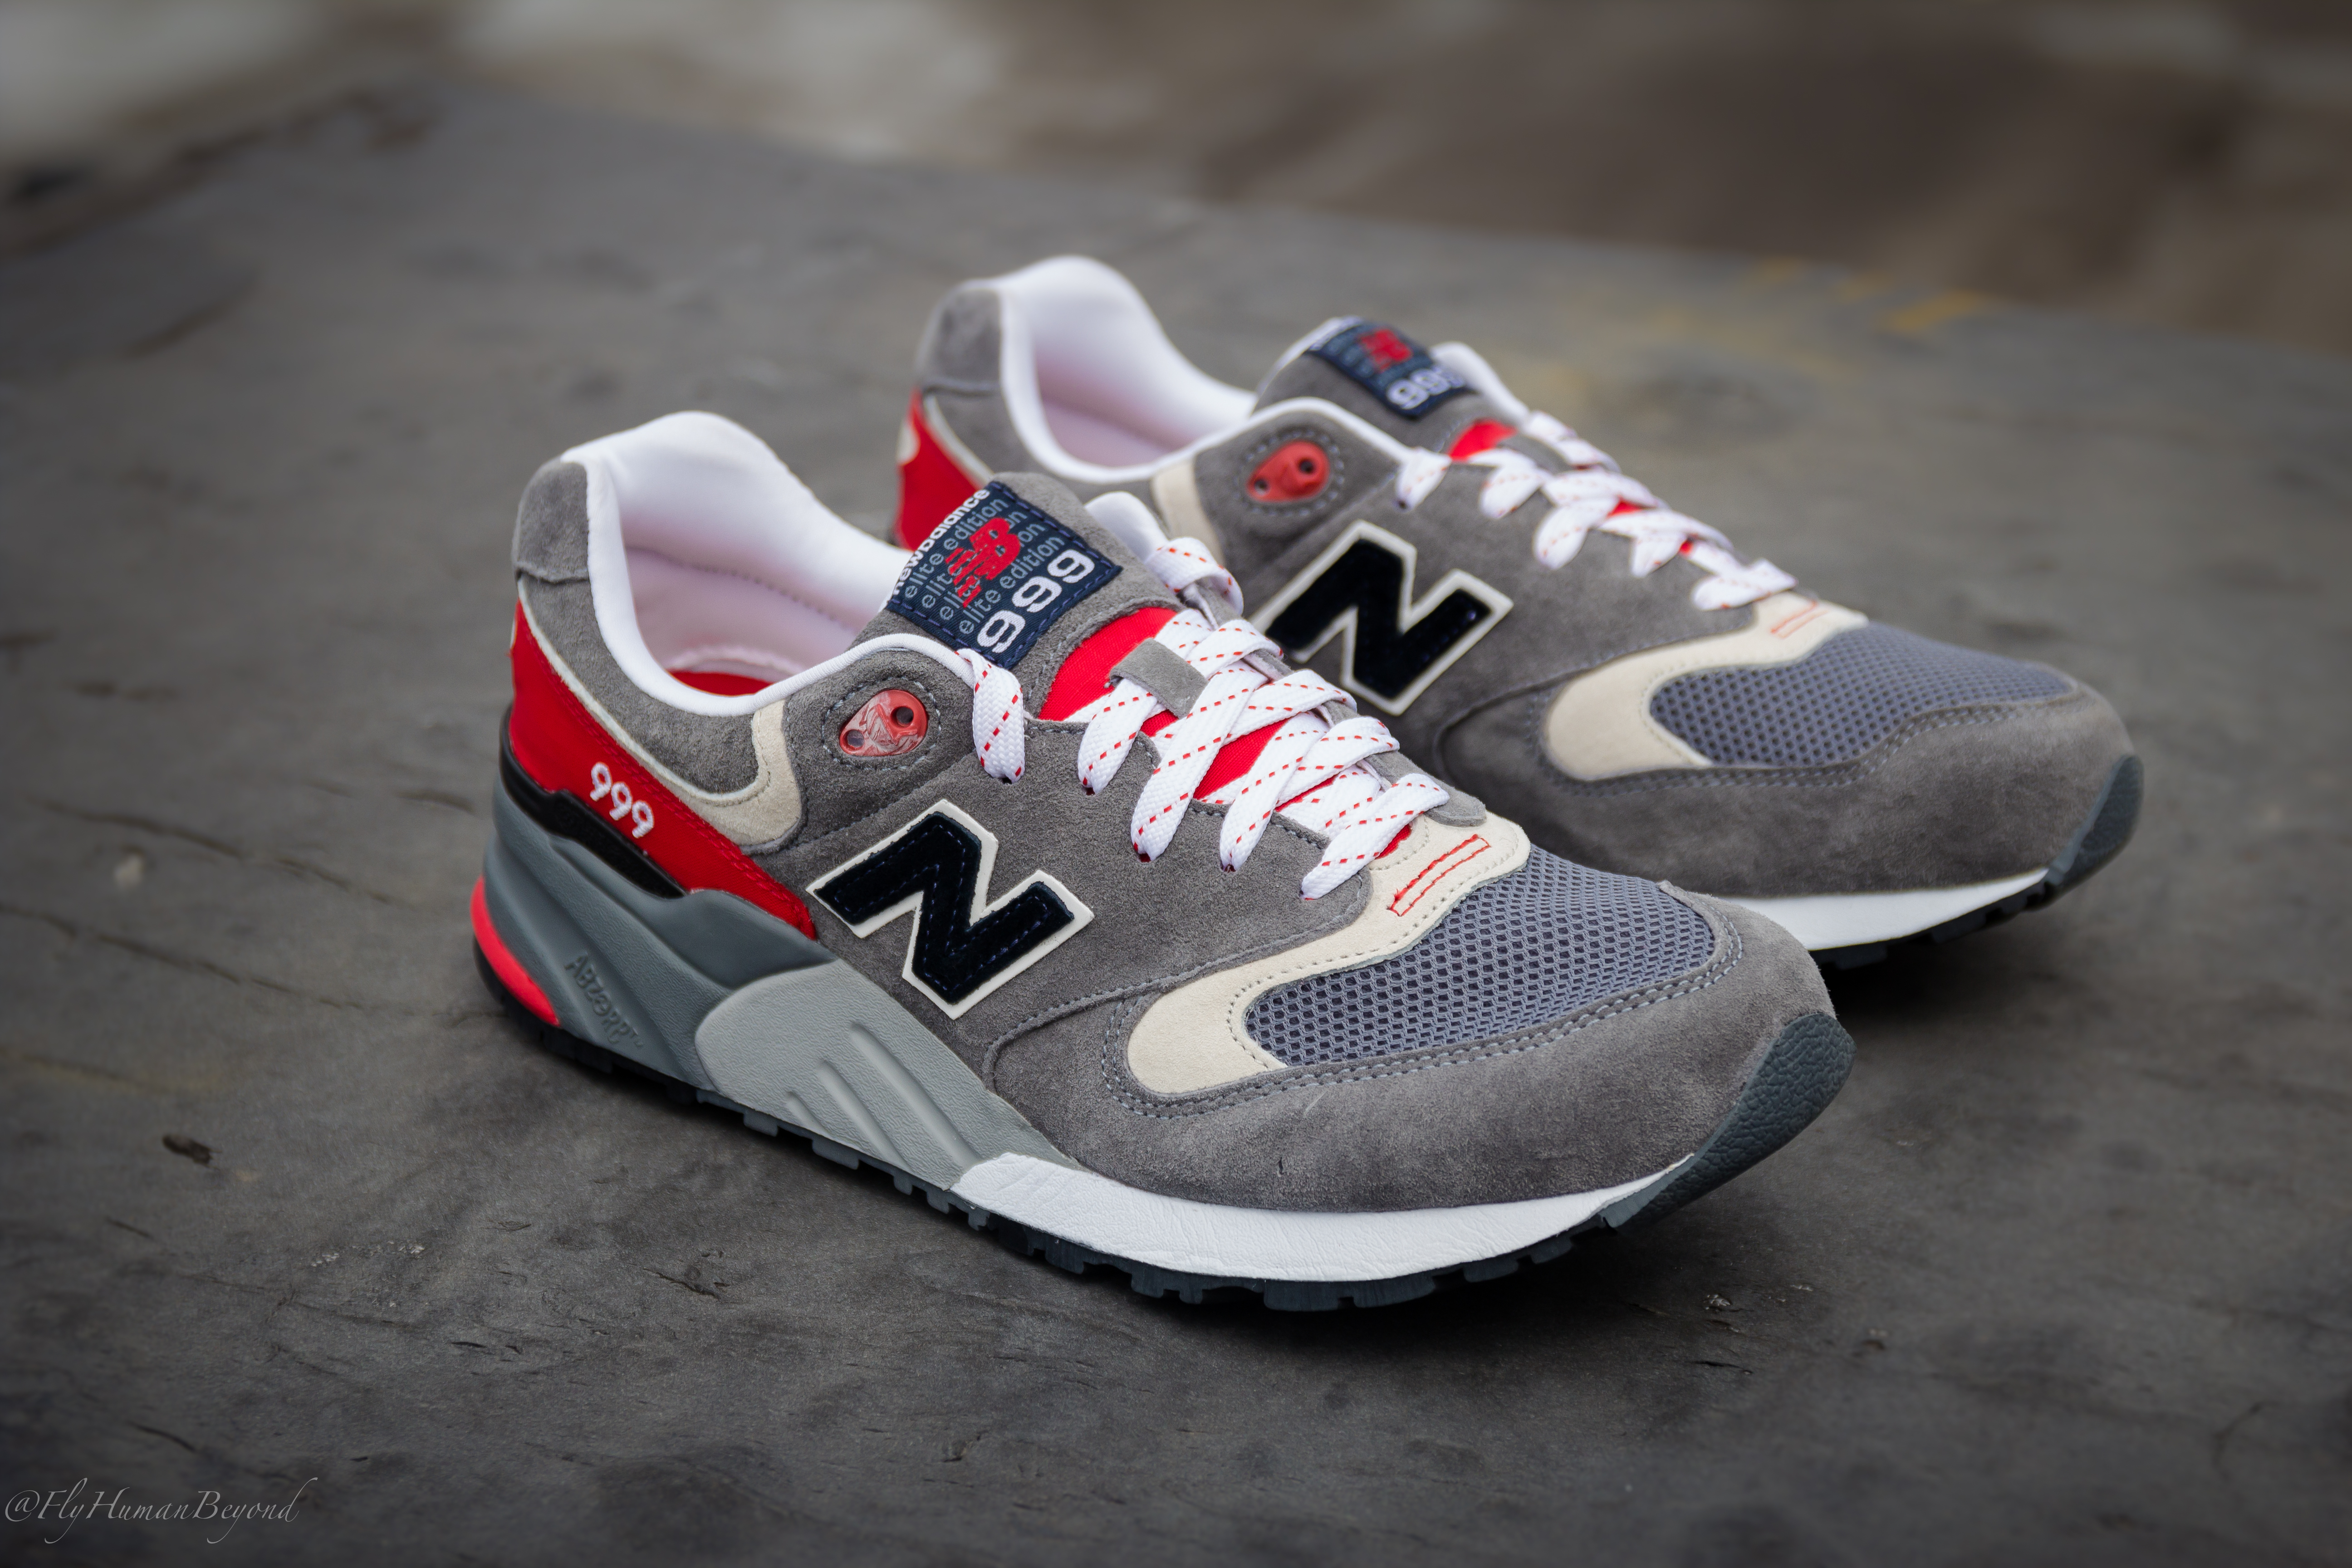 New Balance Shoes With High Toe Box